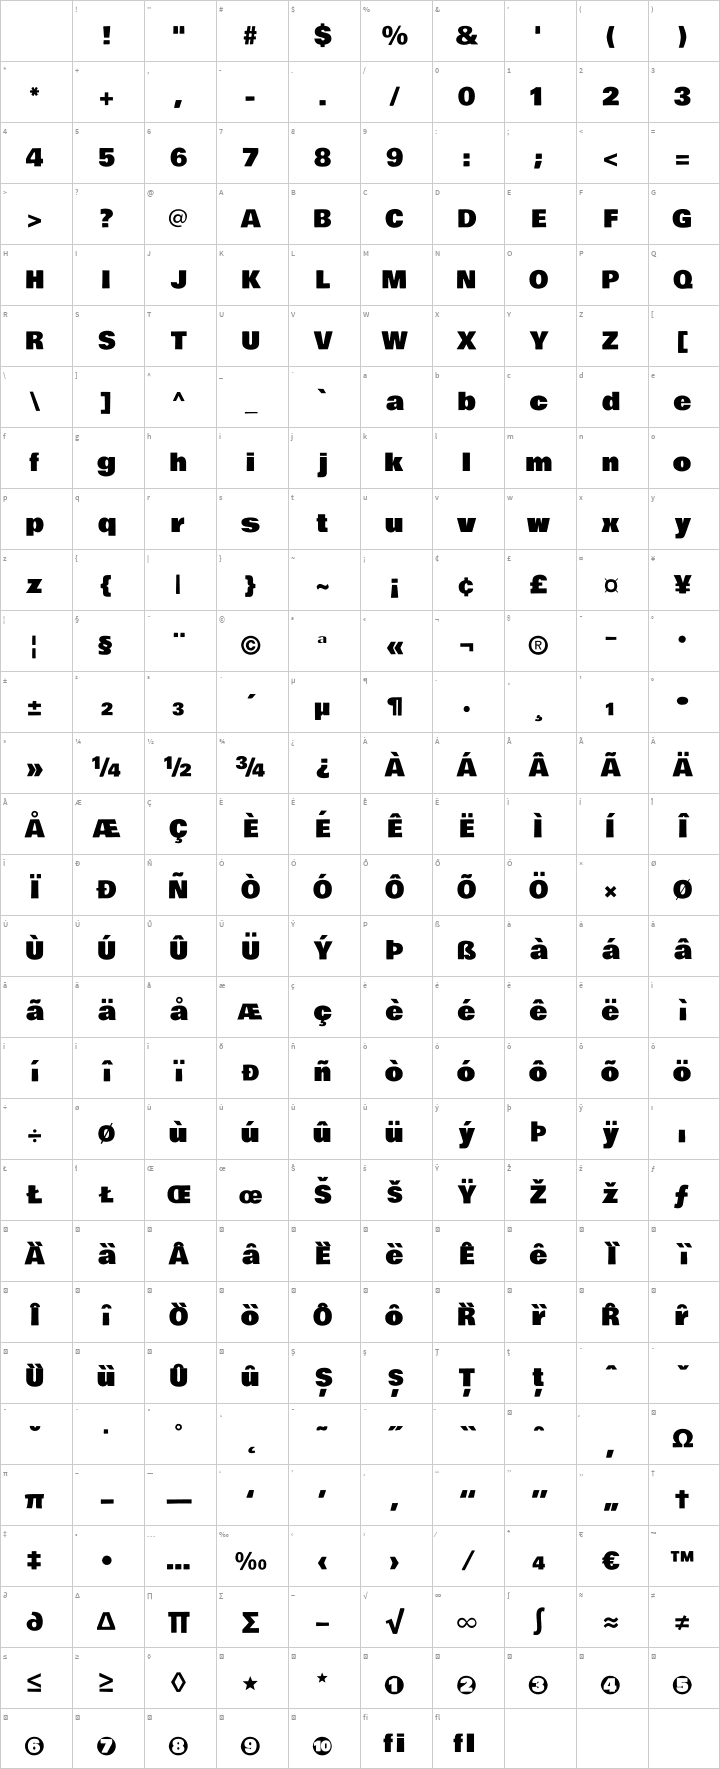 Bowlby One Font Free by Vernon Adams » Font Squirrel